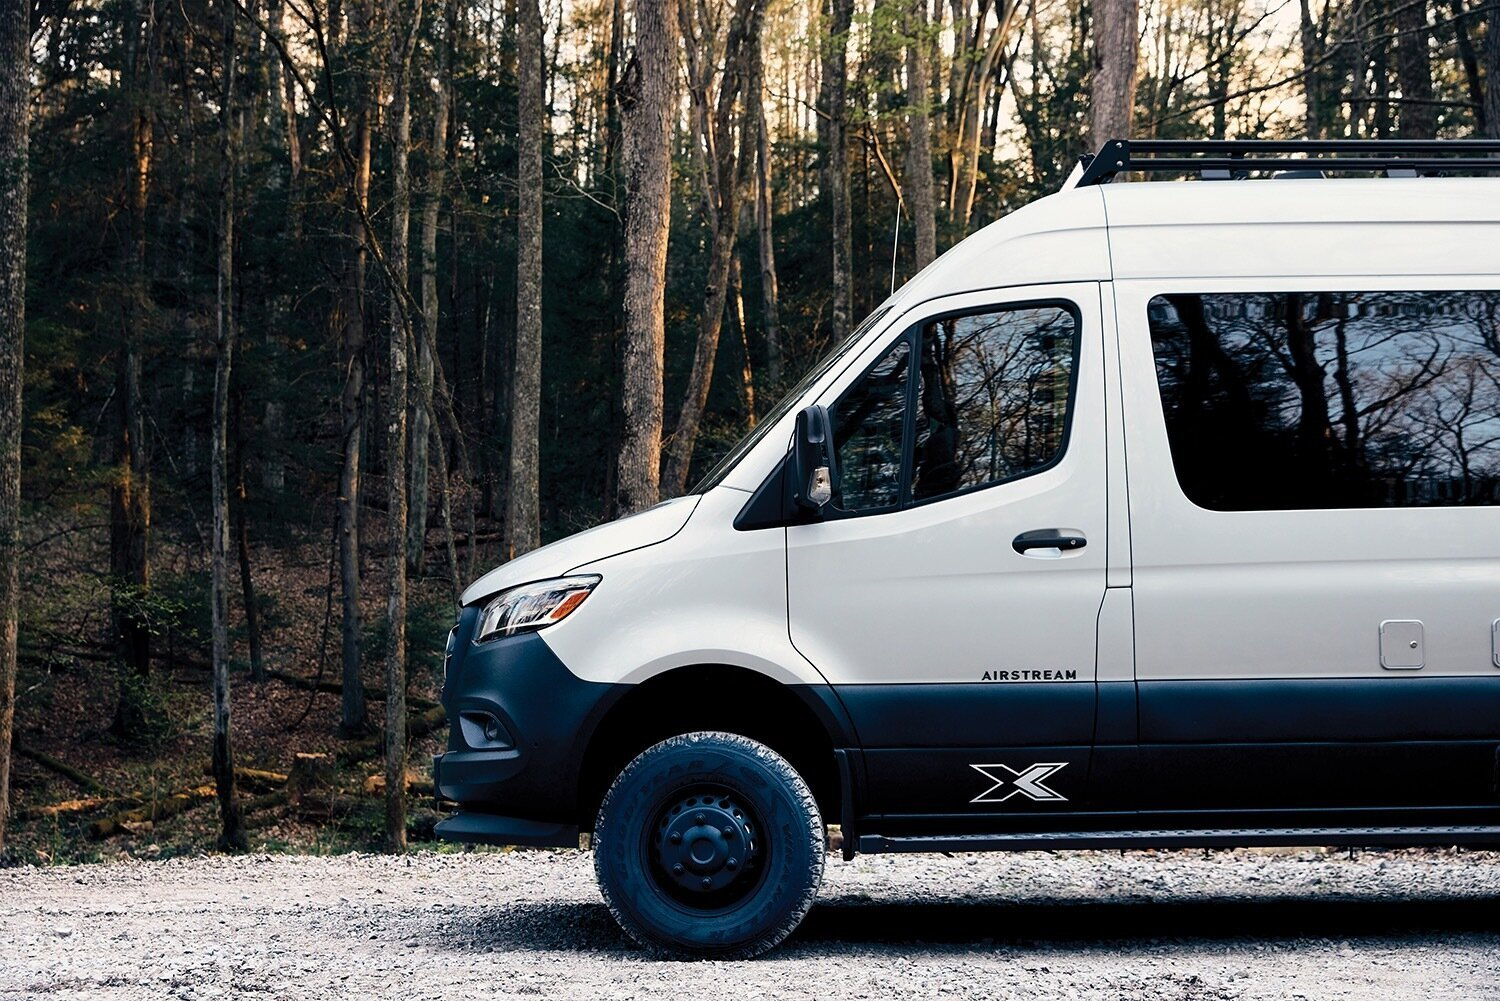 Airstream's First-Ever Adventure Van Is Ideal for Your Off-Grid Escapades